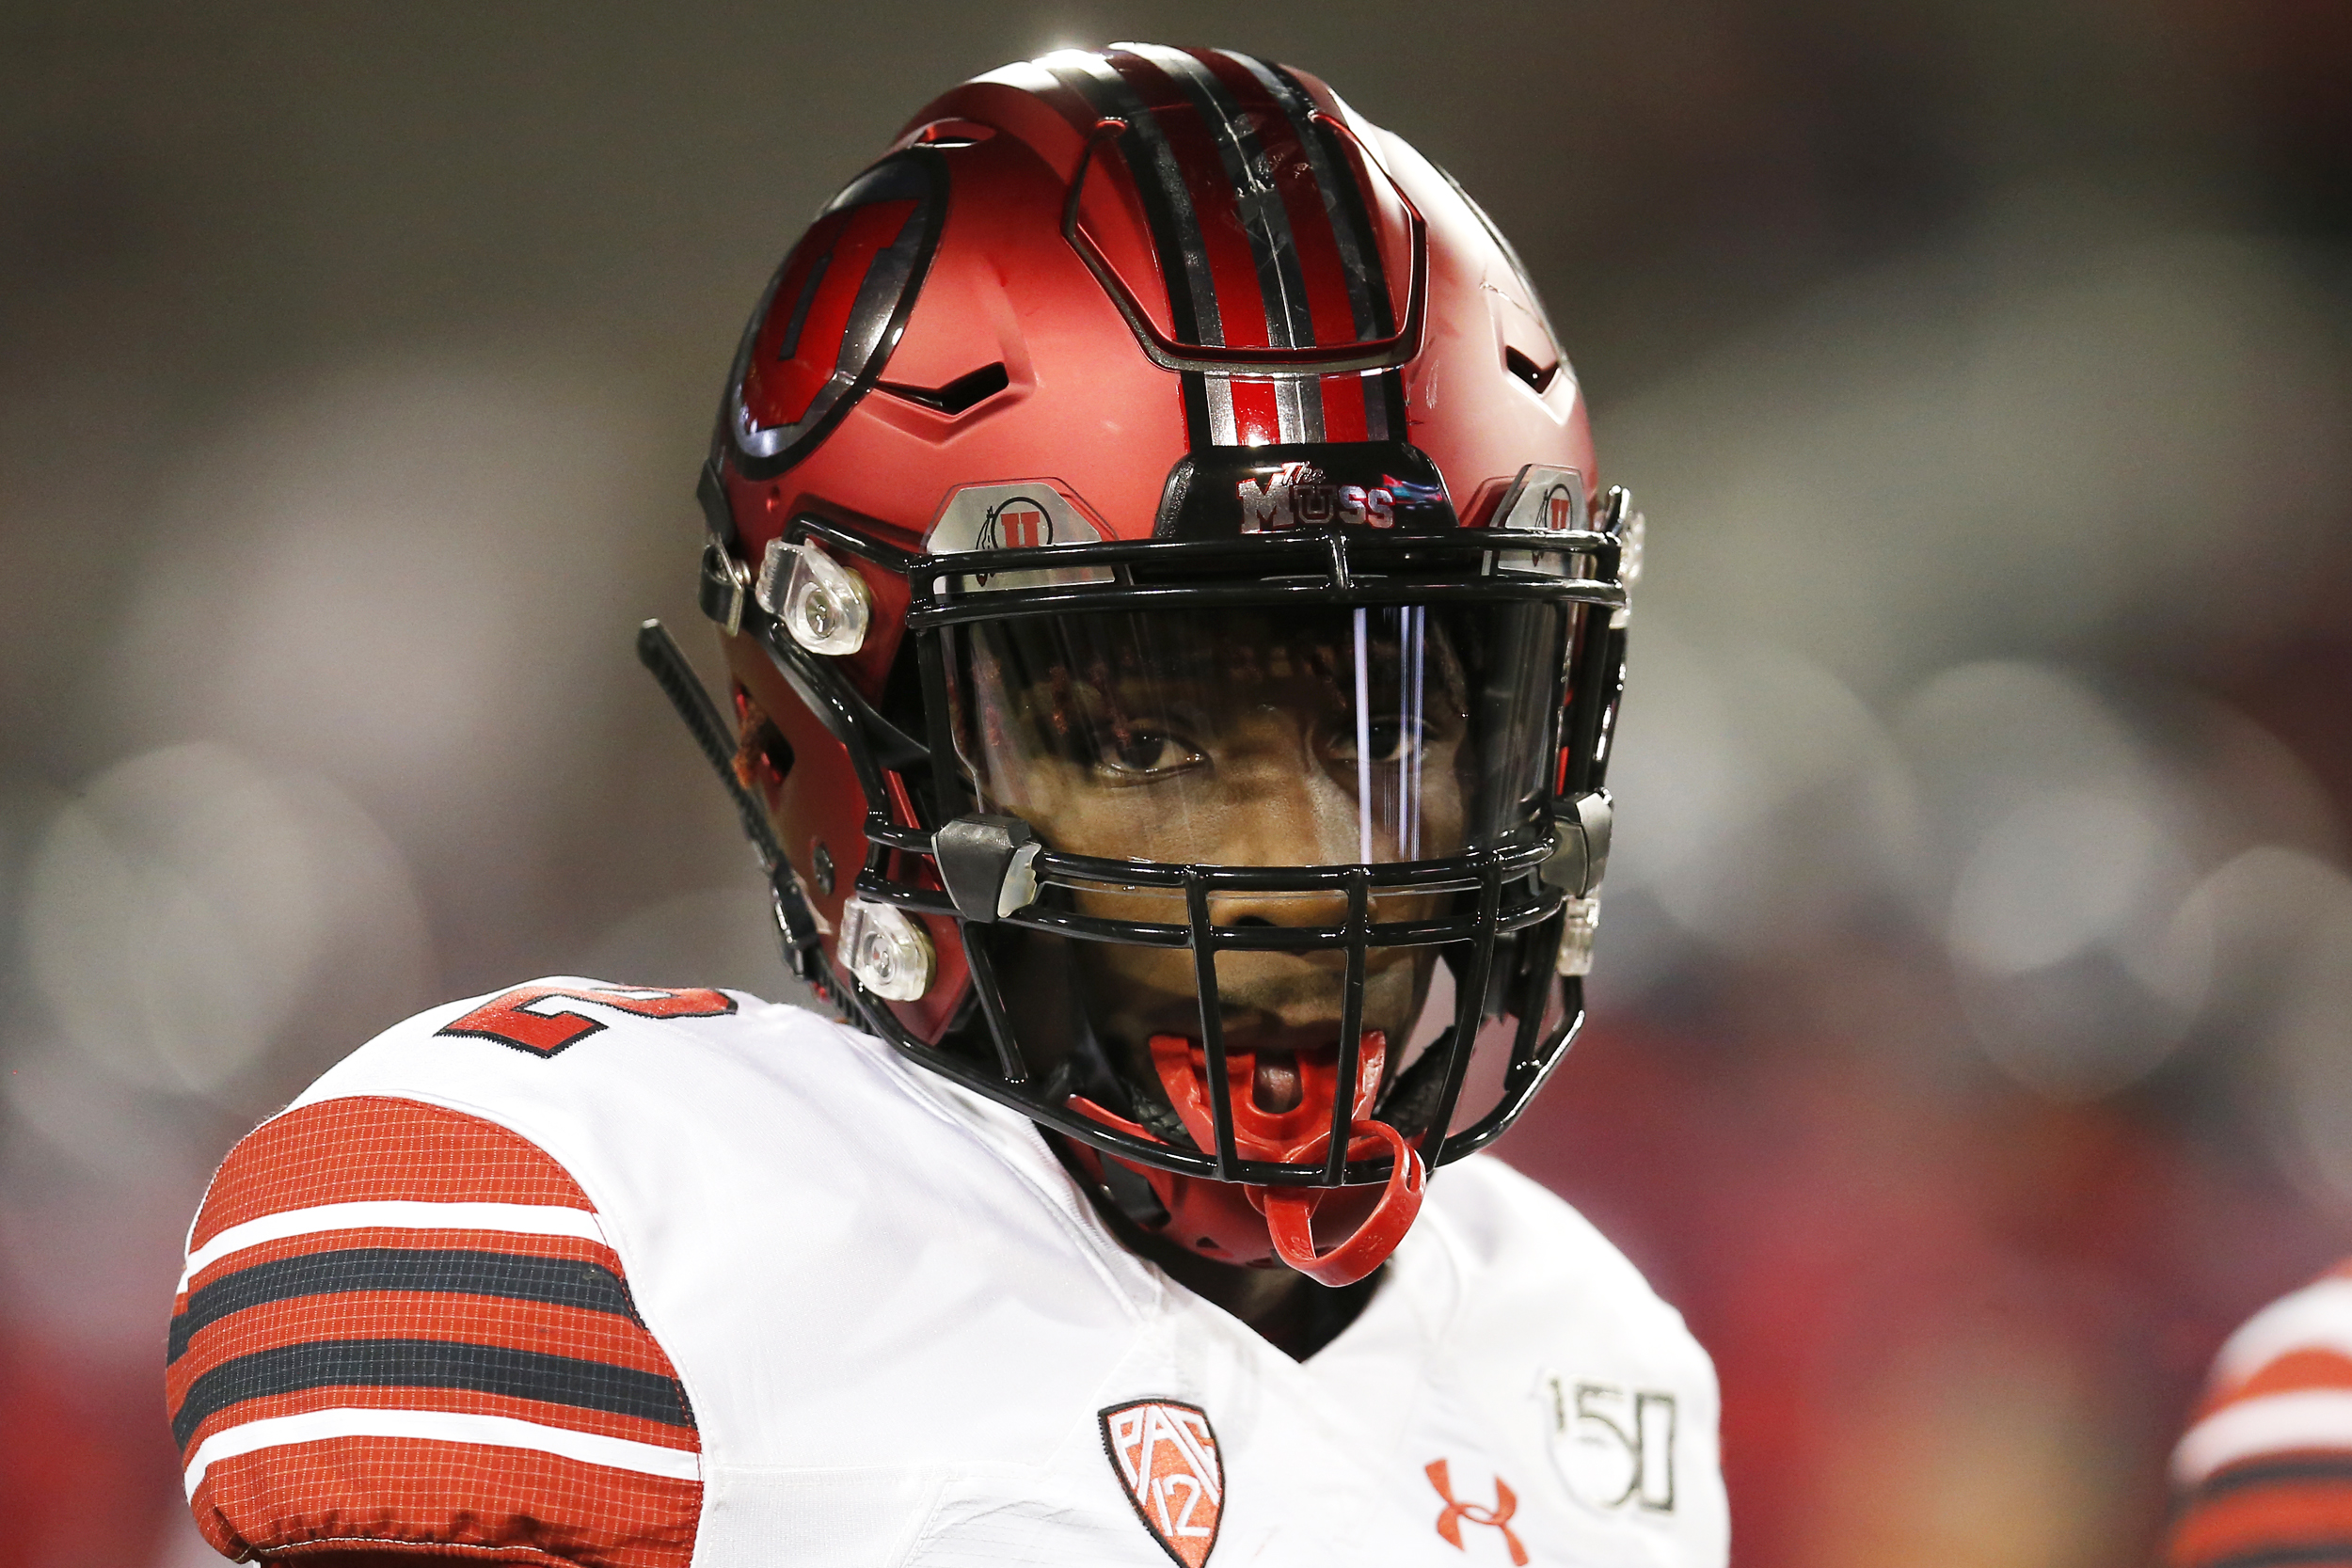 Arrest made in shooting death of University of Utah football player